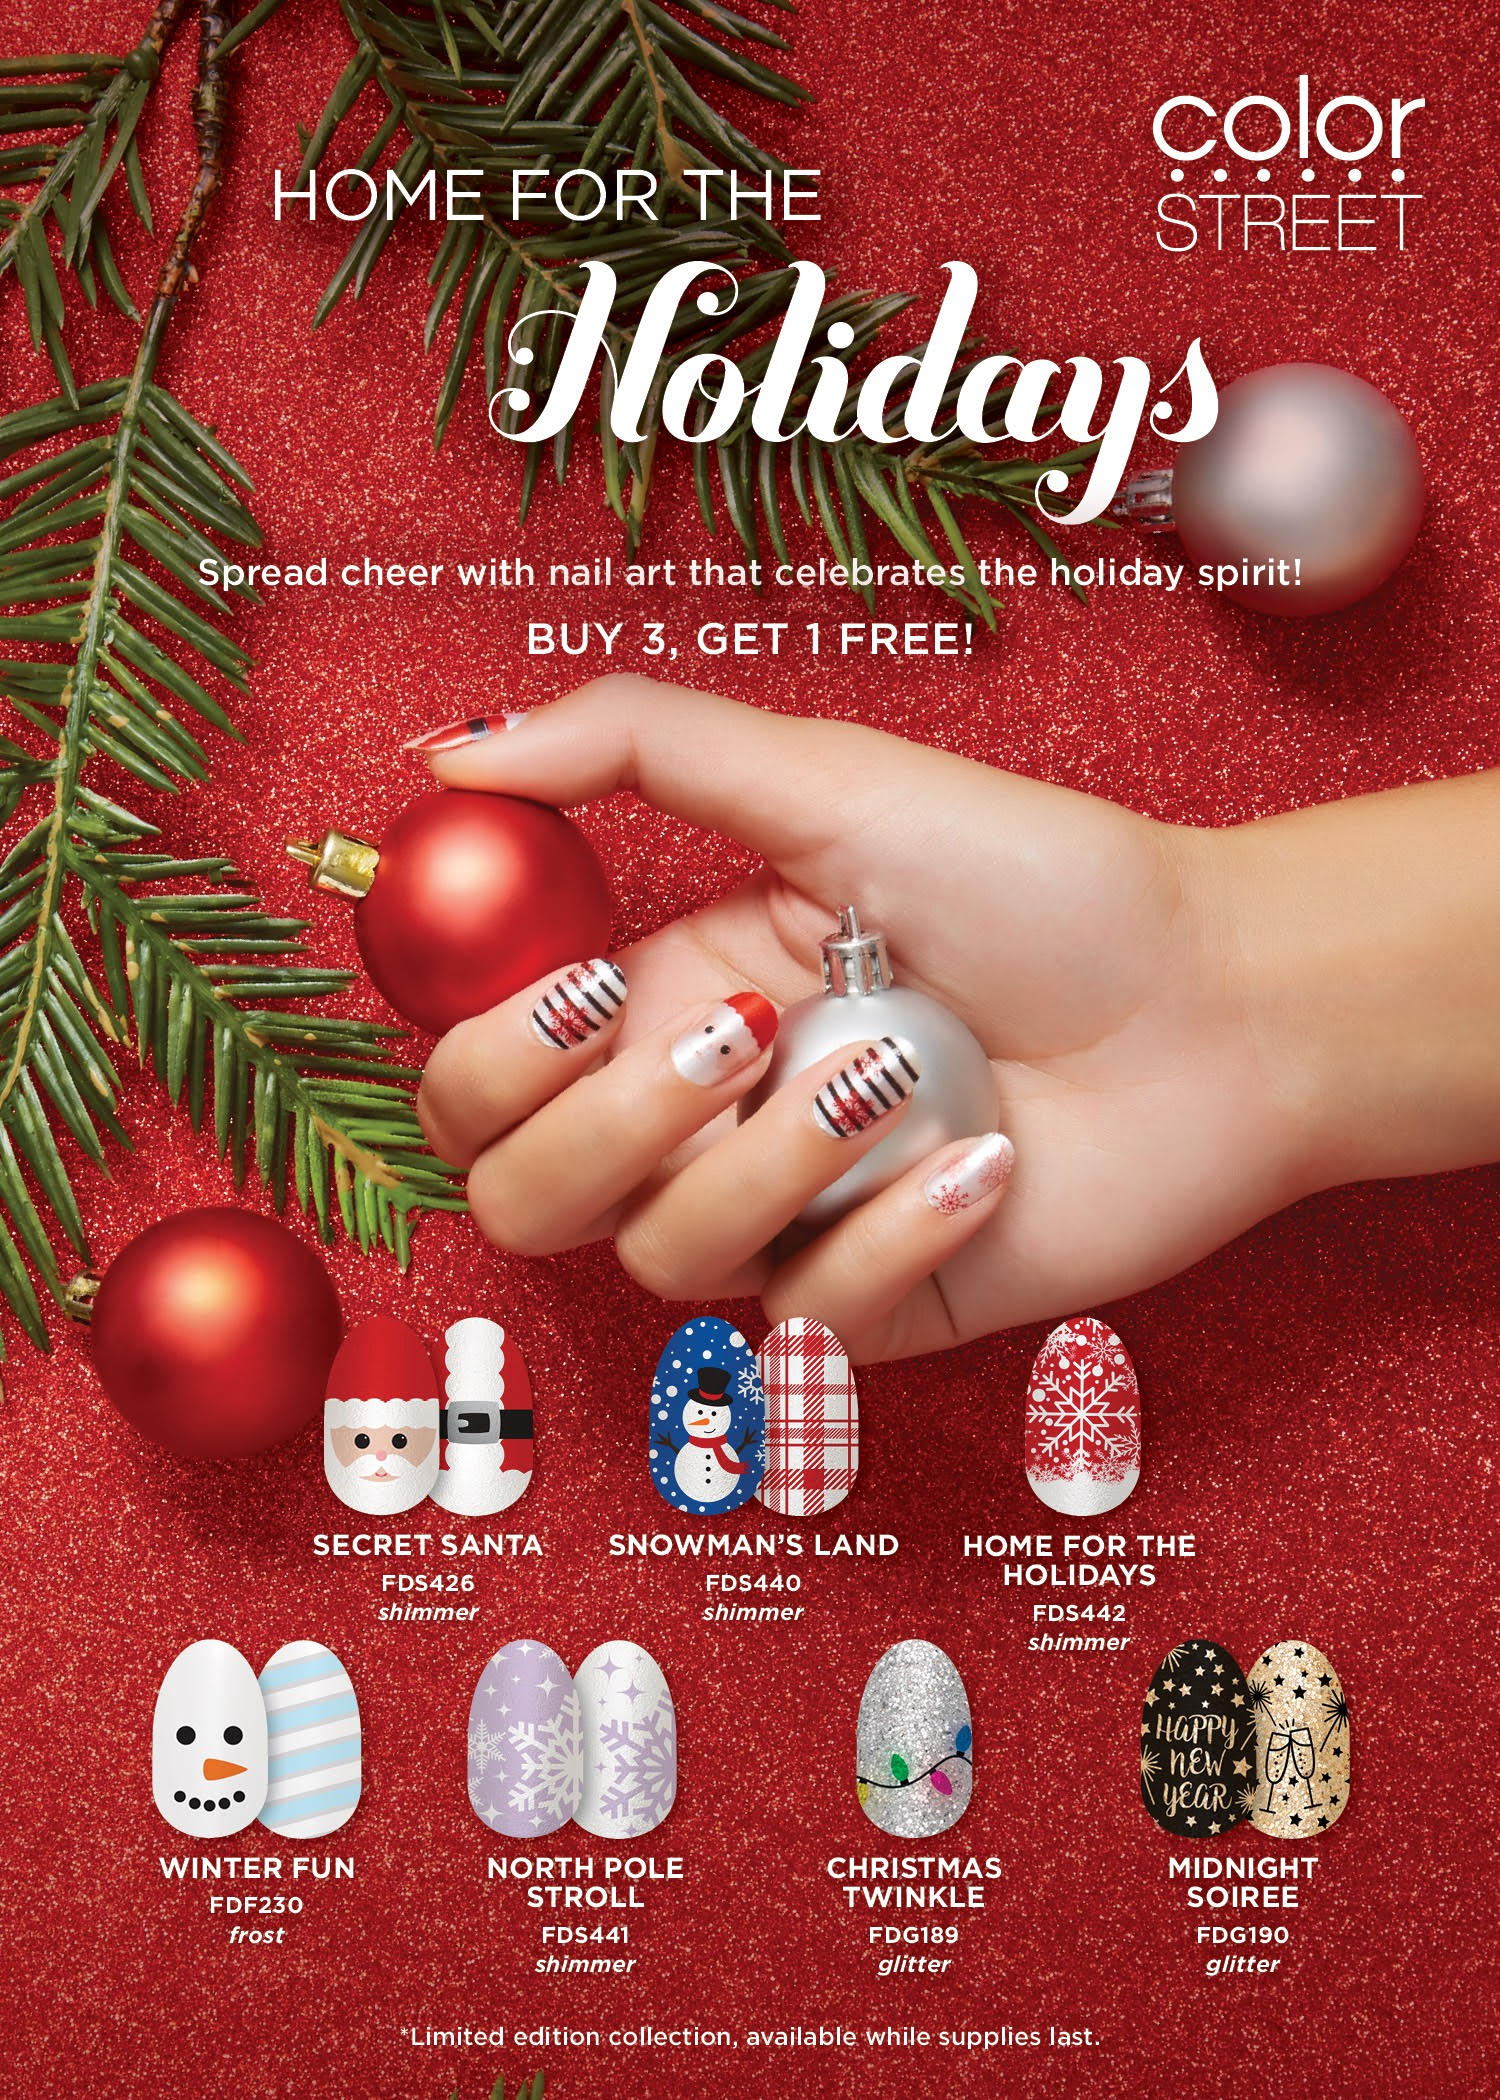 HAVE FESTIVE NAILS THIS HOLIDAY SEASON WITH COLORSTREET | Macaroni Kid